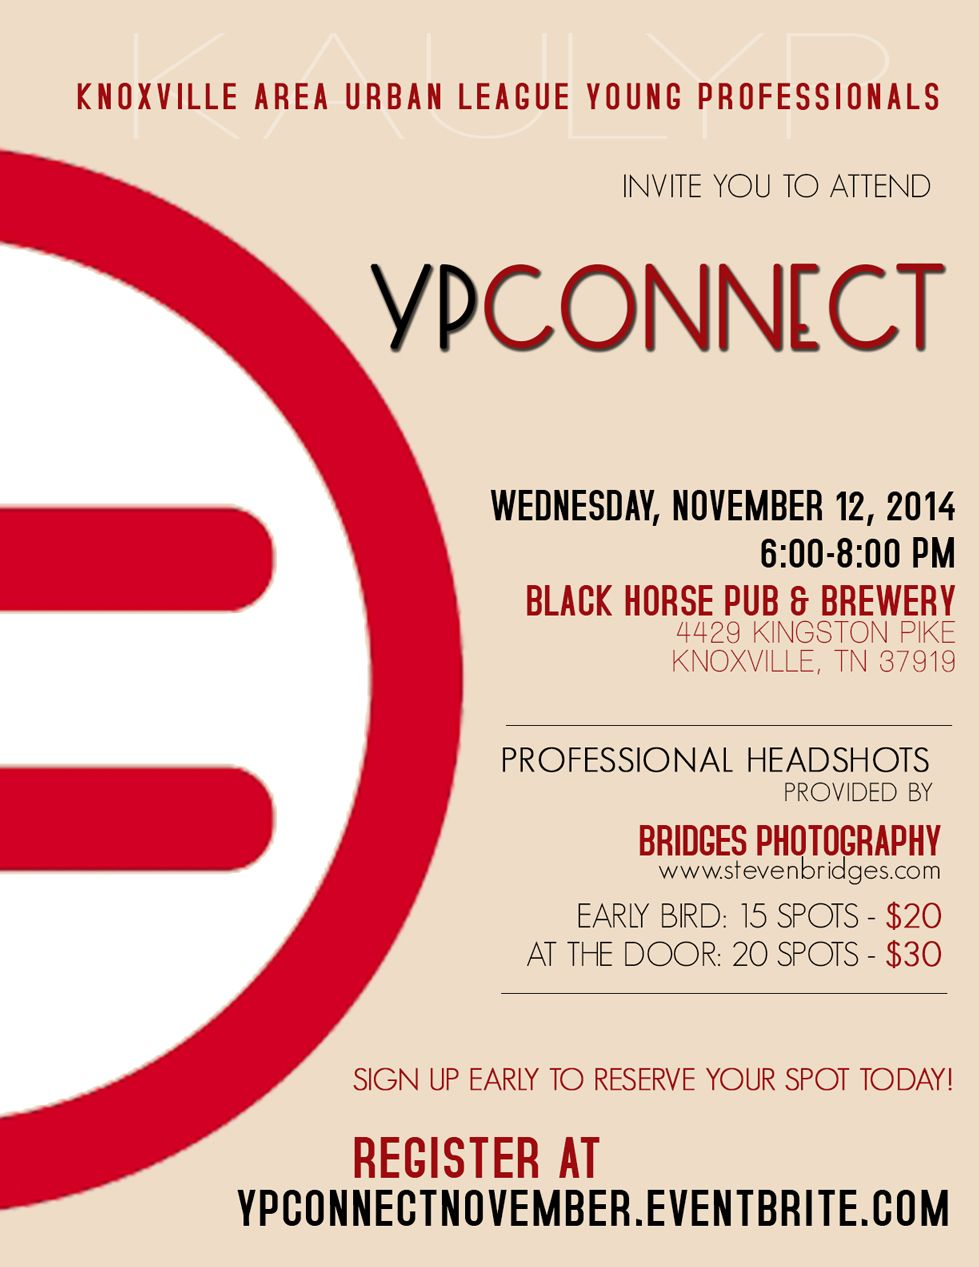 networking event flyer for the knoxville area urban league young professionals